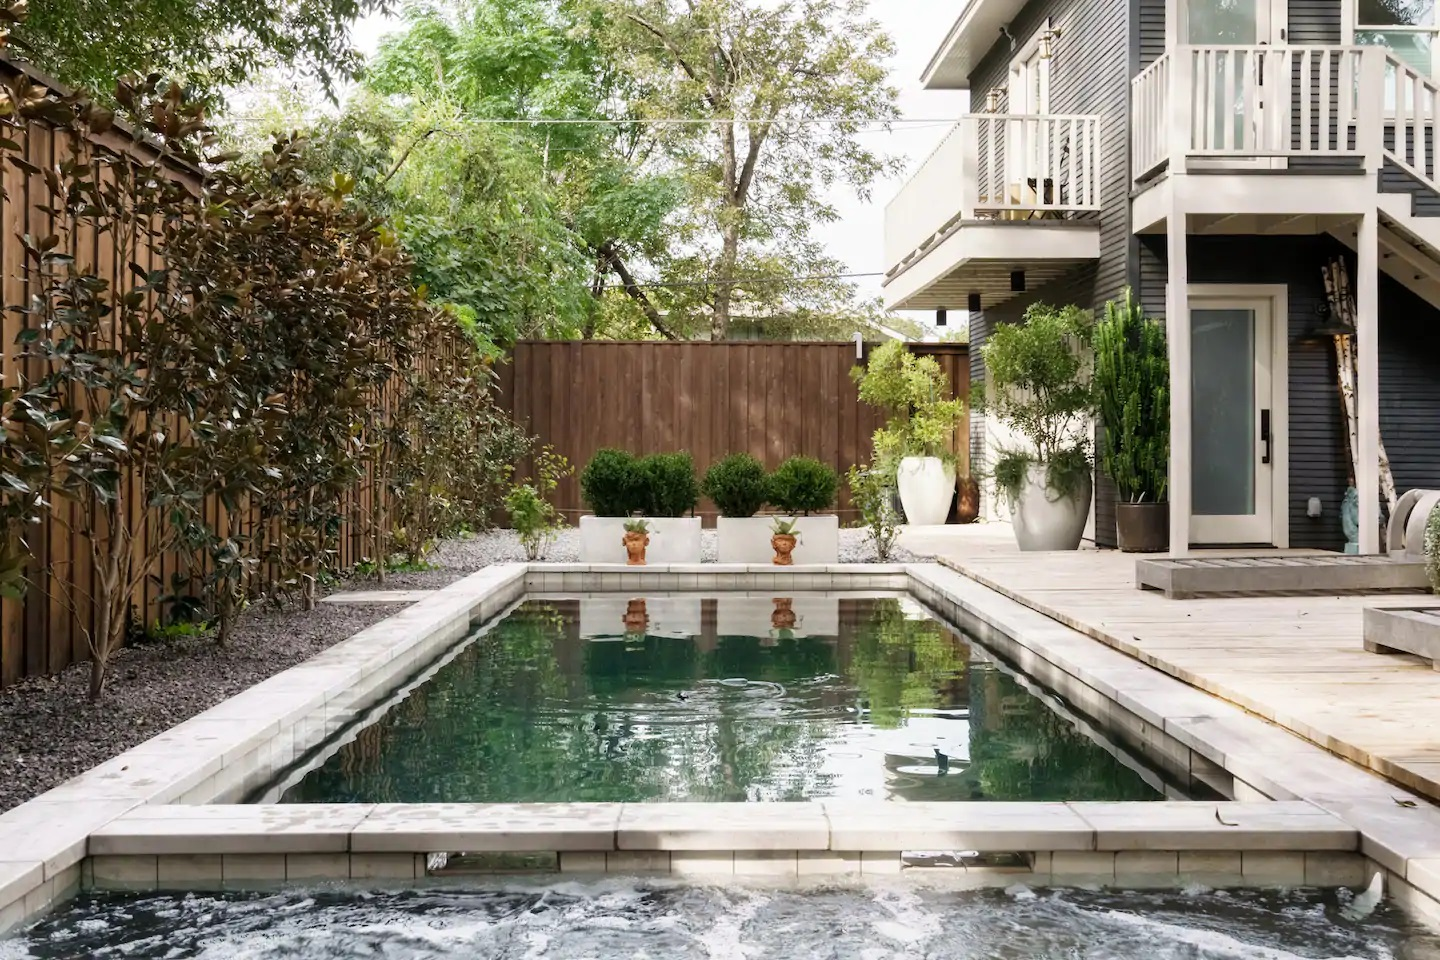 Photo of the pool and back exterior of an Airbnb in Dallas.